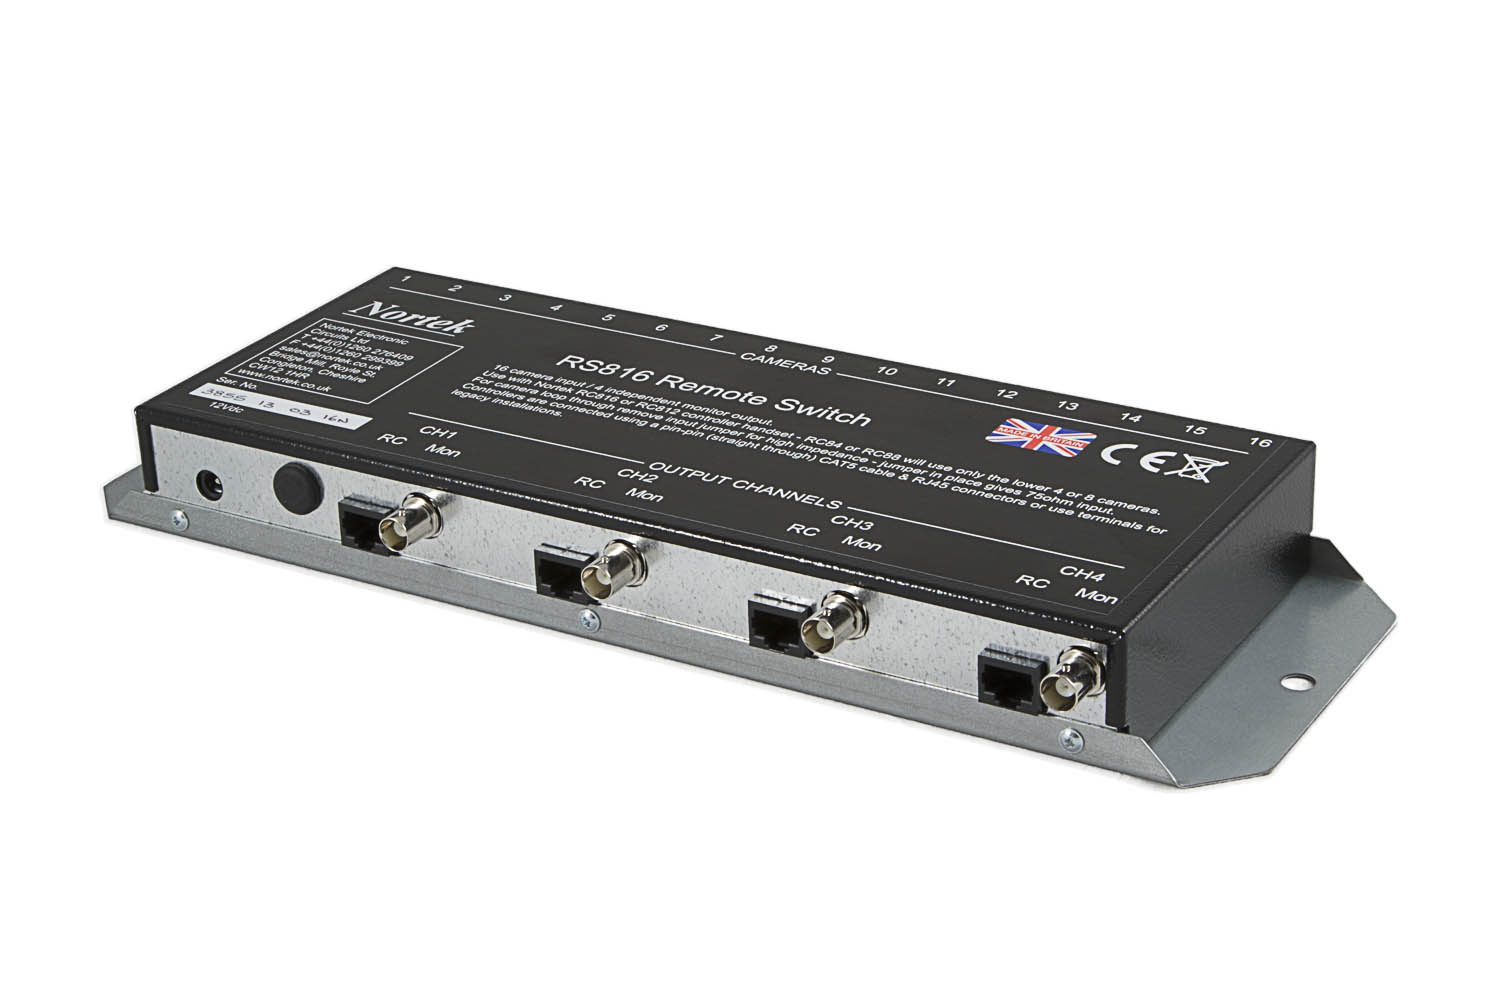 Nortek CCTV Remote Switcher